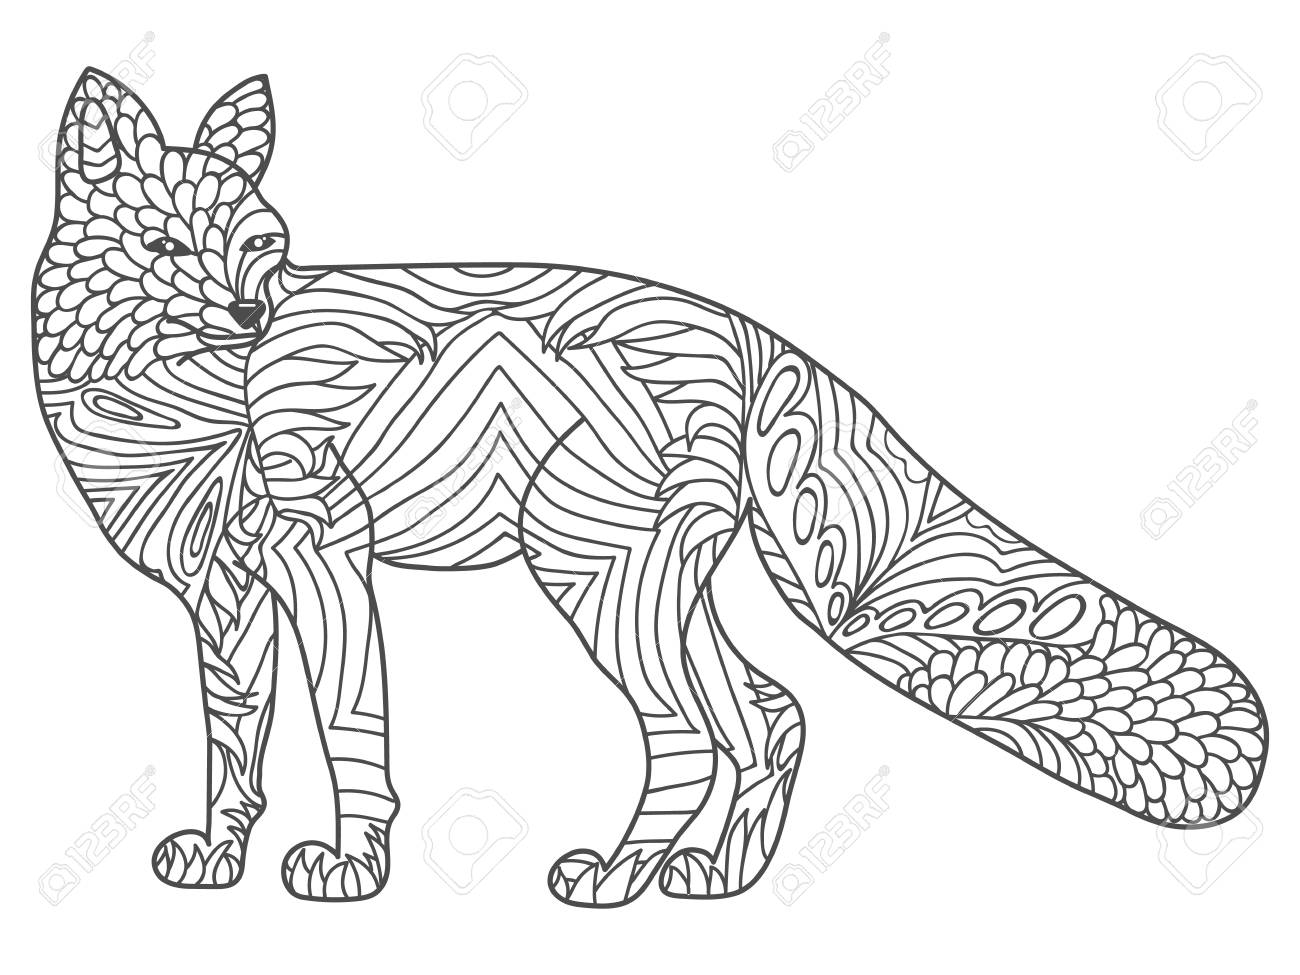 Vector Happy Fox For Adult Anti Stress Coloring Pages Ornamental Royalty Free Cliparts Vectors And Stock Illustration Image 122019559